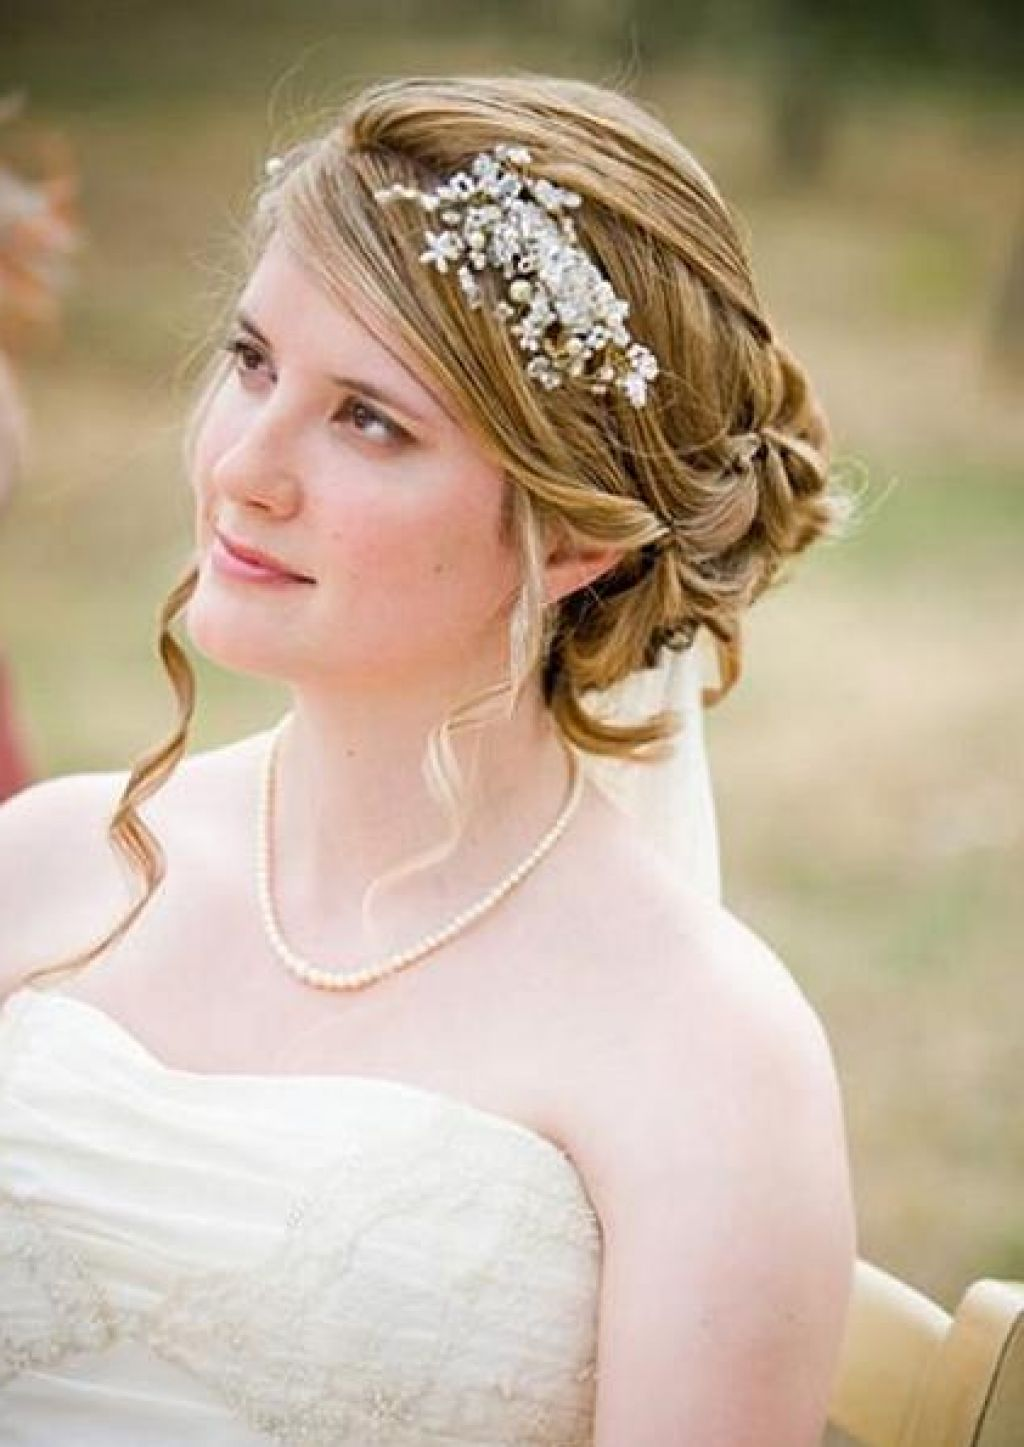 sweet updo hairstyles for beach wedding_03 - latest hair styles